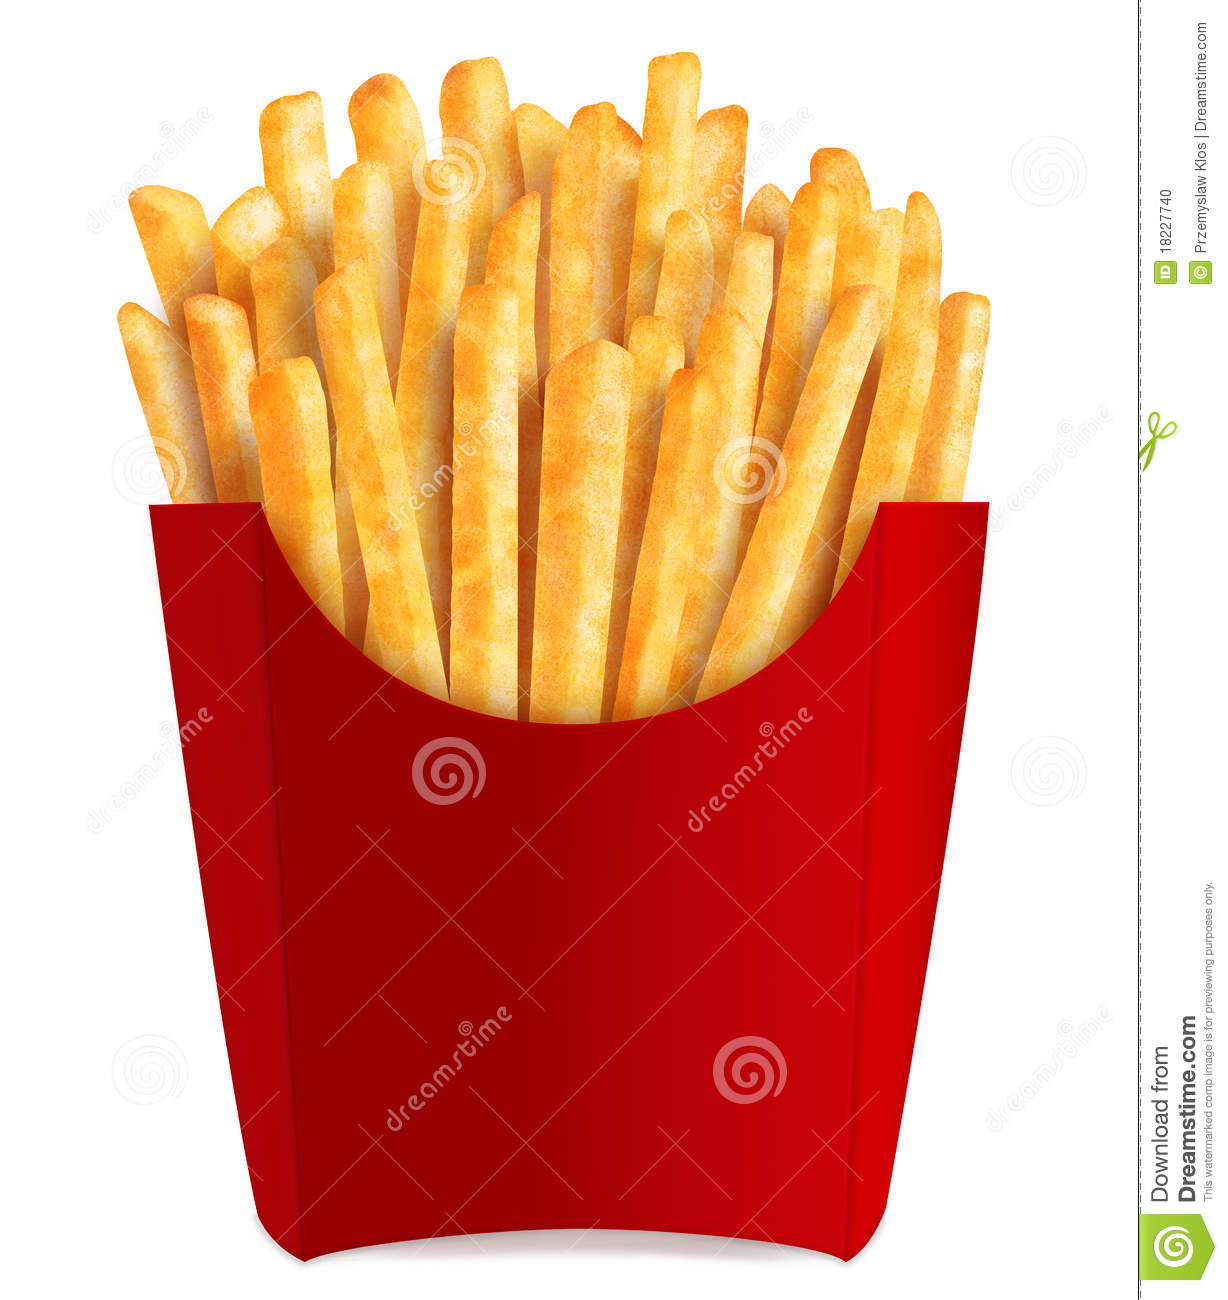 French fries in popular red box